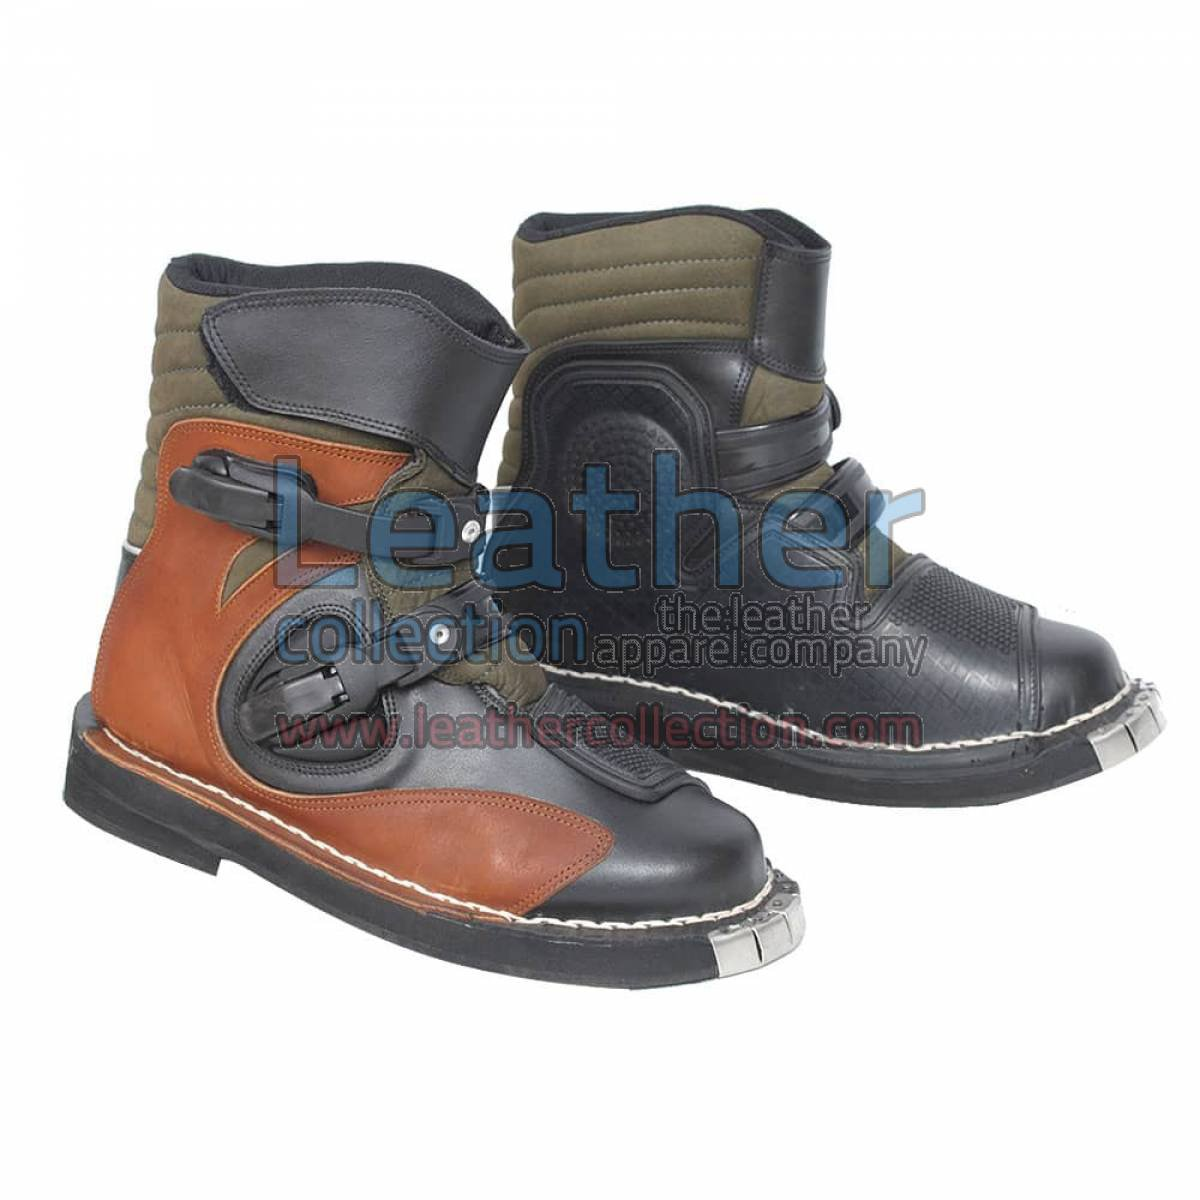 Bandit Motorcycle Riding Boots